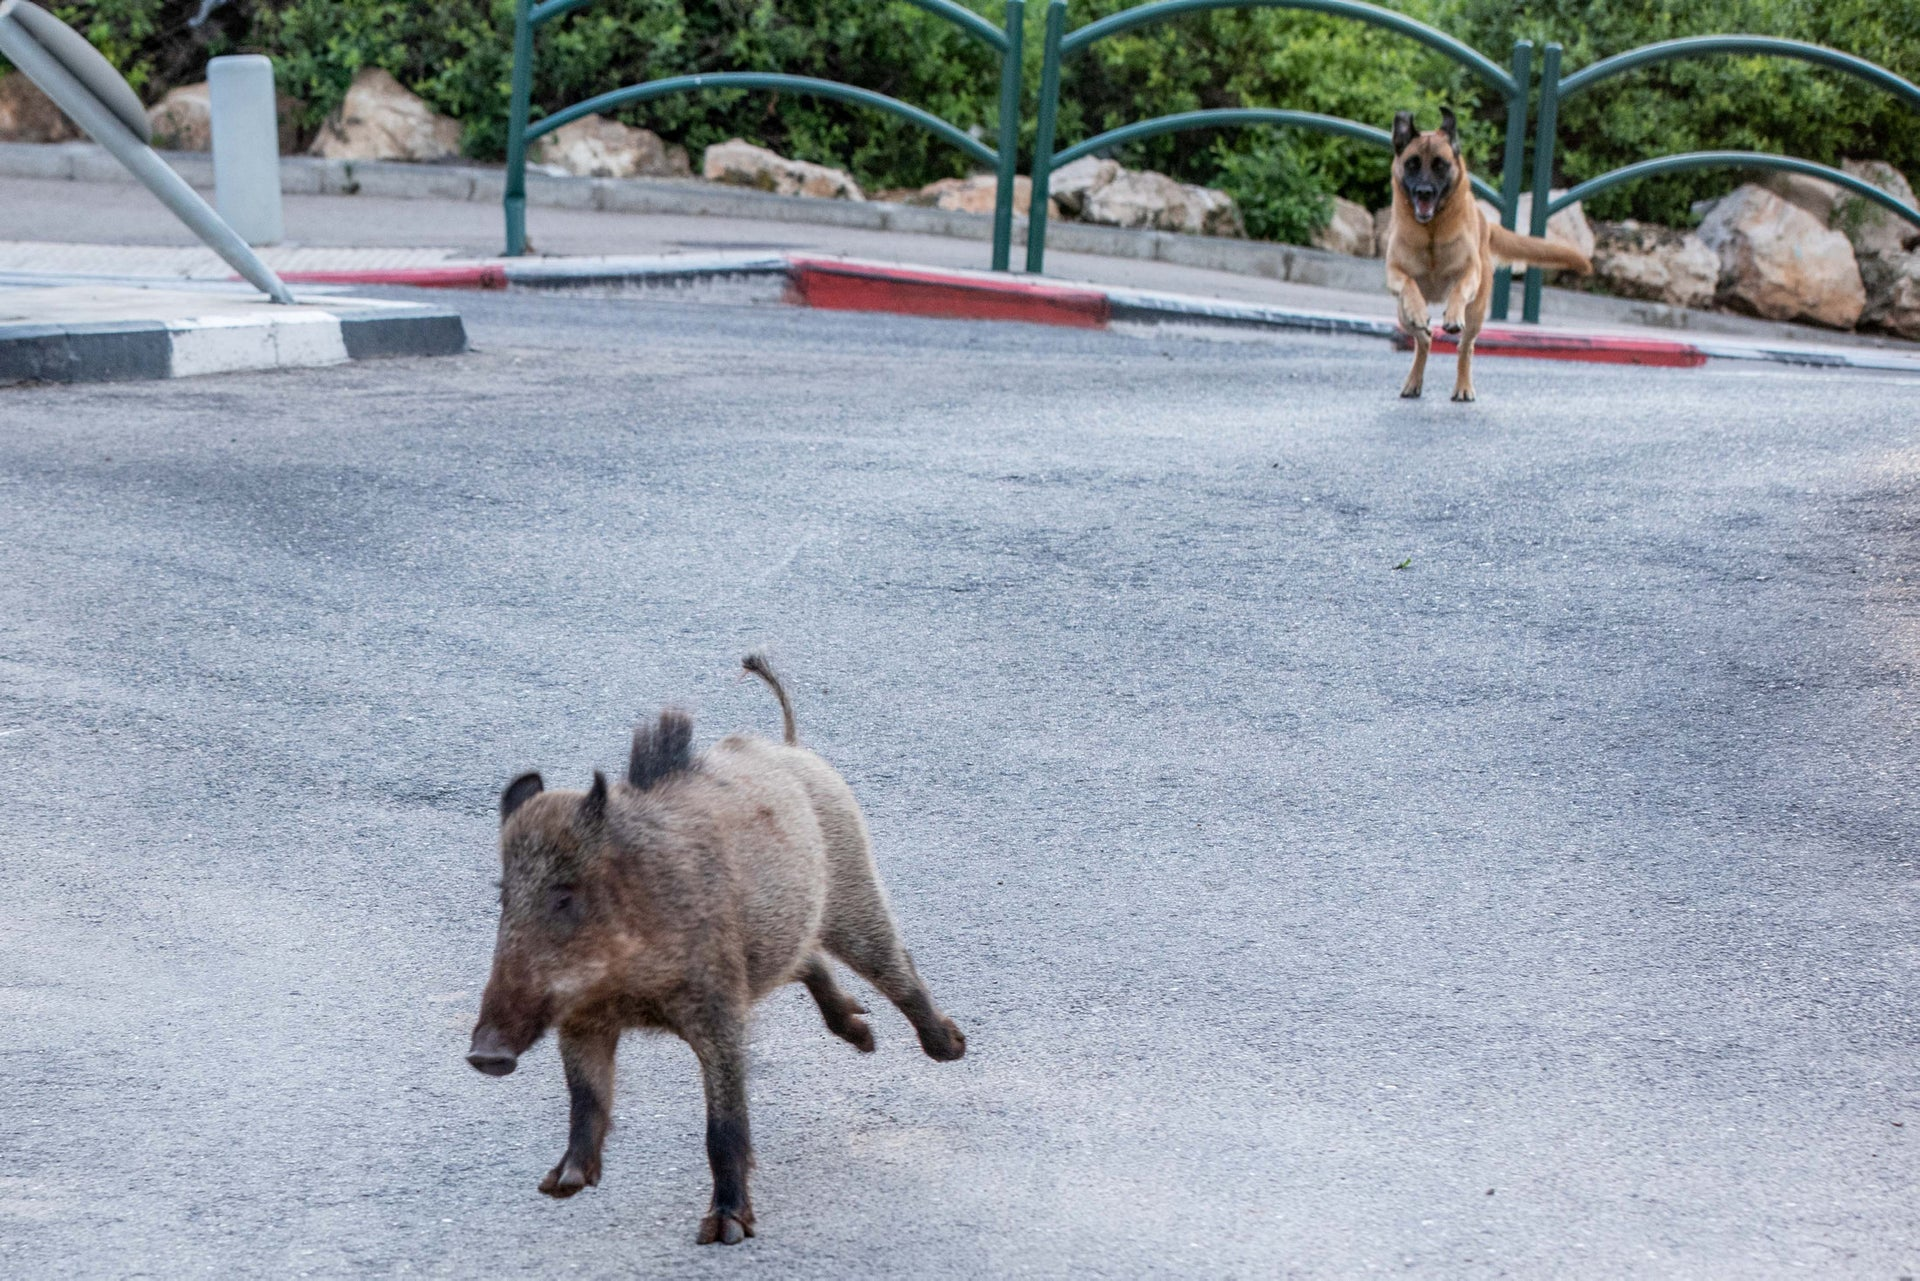 A wild boar runs for its life as it is chased by a dog in Haifa, in northern Israel, April 13, 2020.